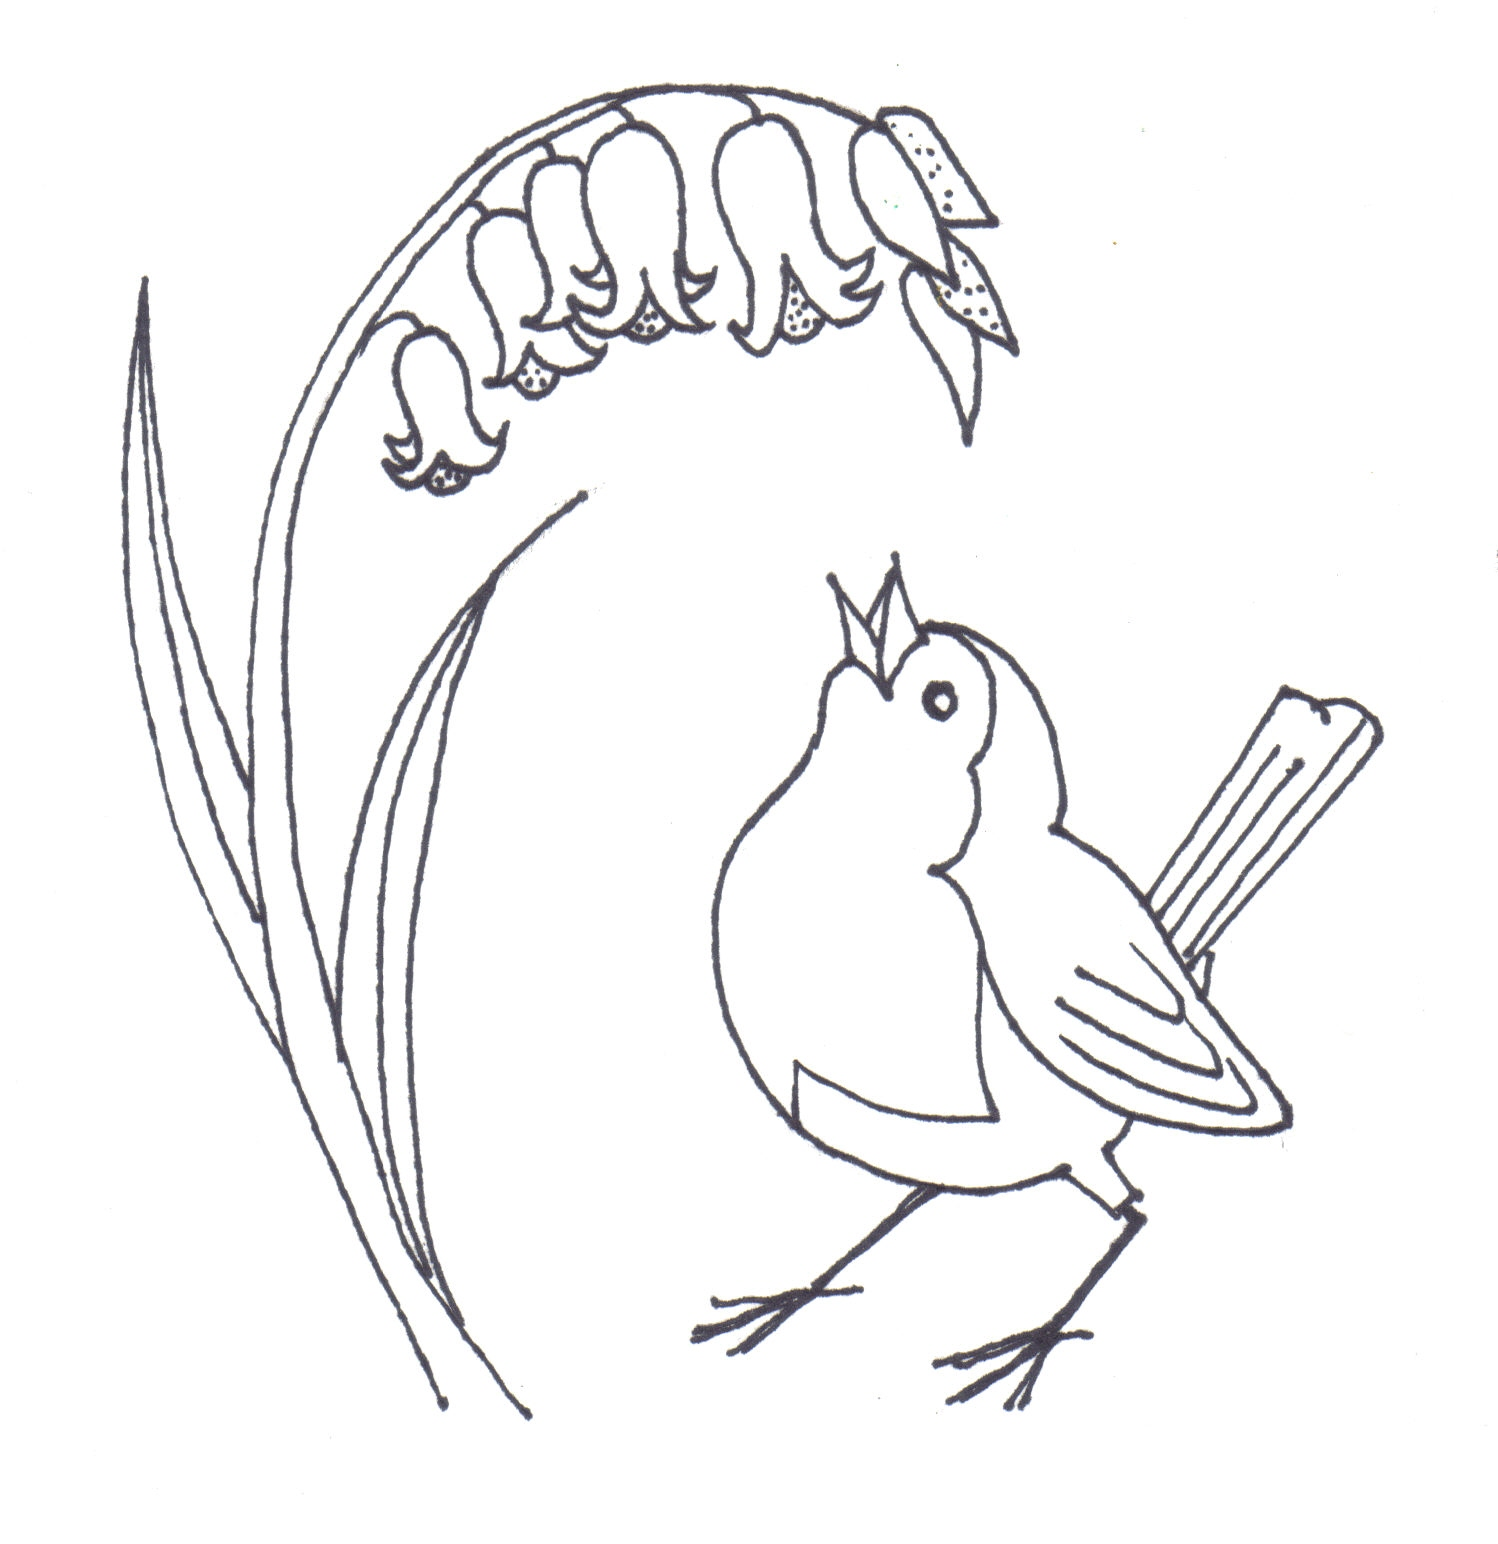 Simple line drawing at. Bird clip art easy svg free stock